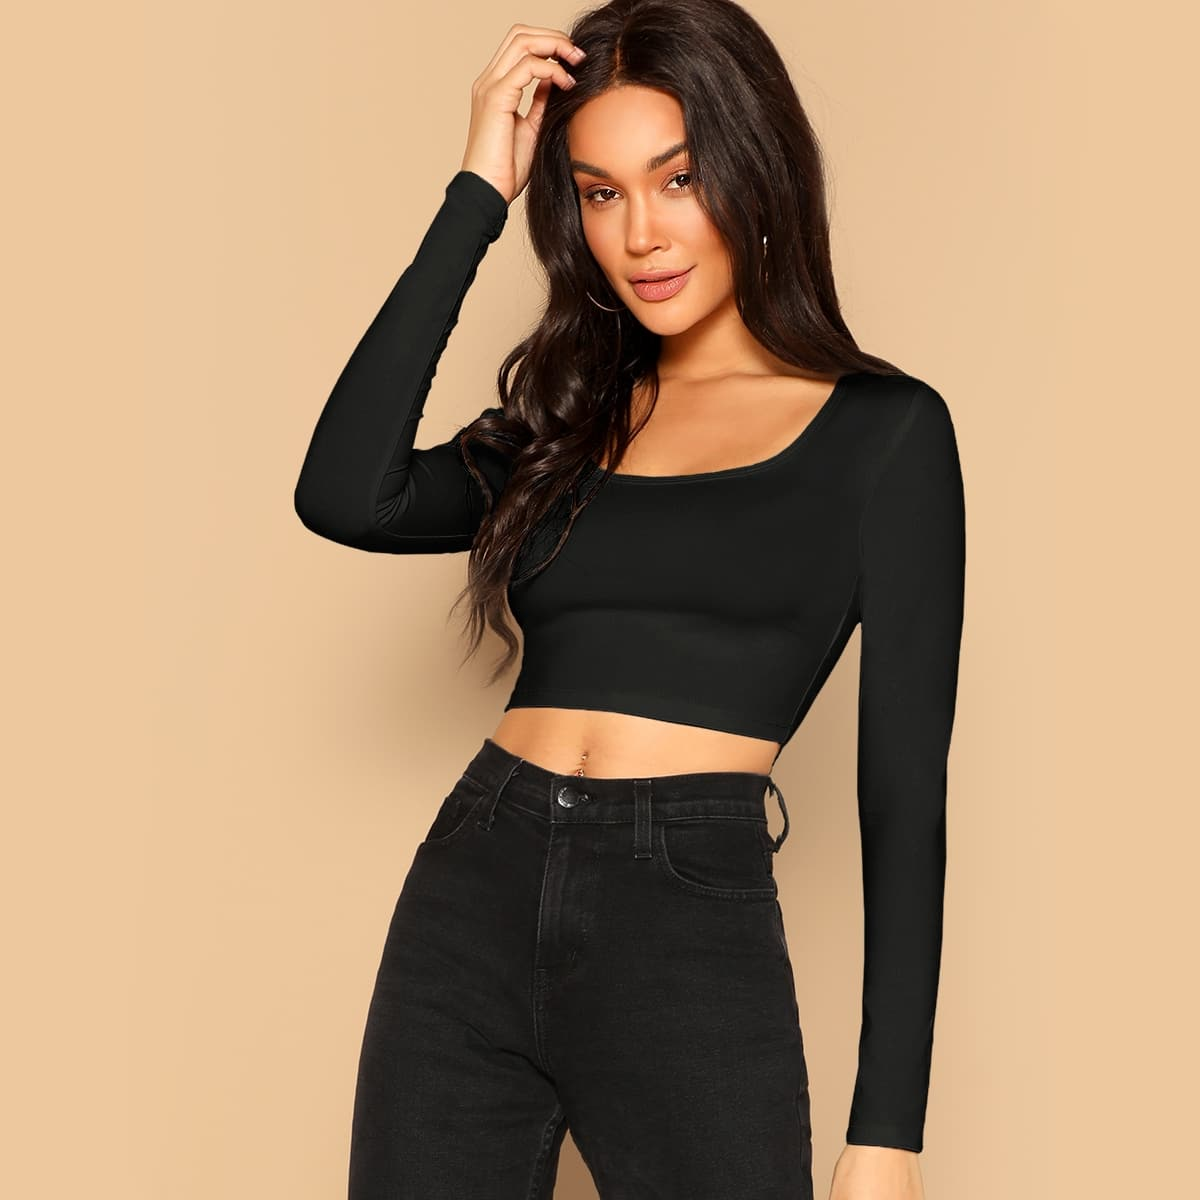 SHEIN coupon: Form Fitted Solid Top